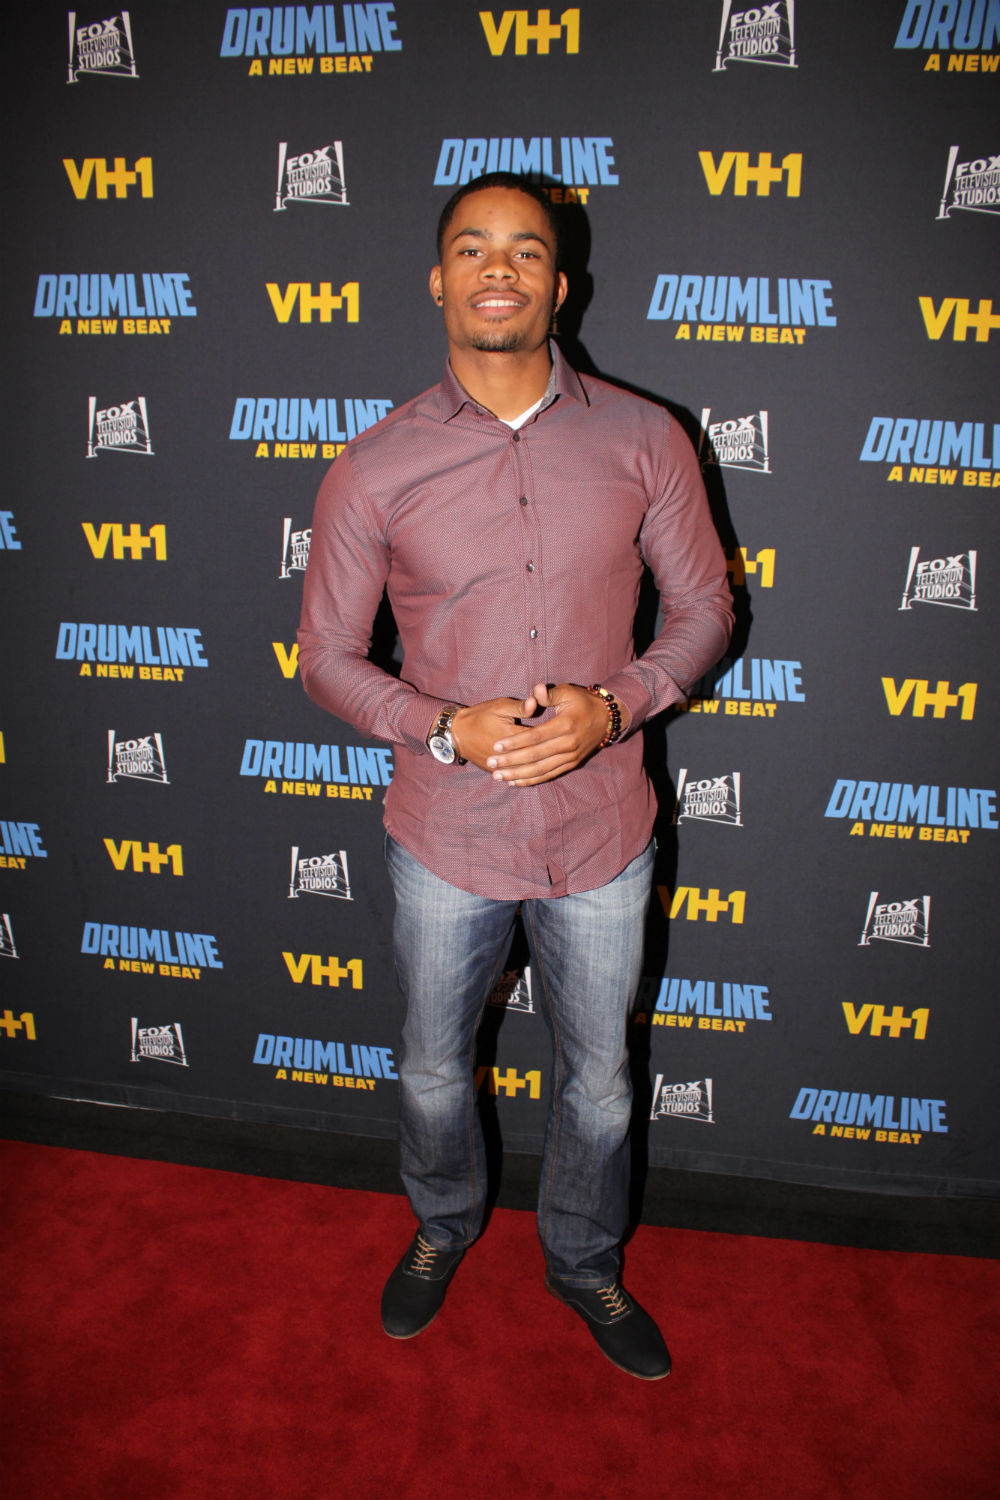 jordan calloway 2015jordan calloway instagram, jordan calloway twitter, jordan calloway, jordan calloway unfabulous, jordan calloway actor, jordan calloway movies, jordan calloway gay, jordan calloway girlfriend, jordan calloway snapchat, jordan calloway facebook, jordan calloway net worth, jordan calloway height, jordan calloway and alexandra shipp, jordan calloway tumblr, jordan calloway vine, jordan calloway age, jordan calloway shirtless, jordan calloway parents, jordan calloway bio, jordan calloway 2015